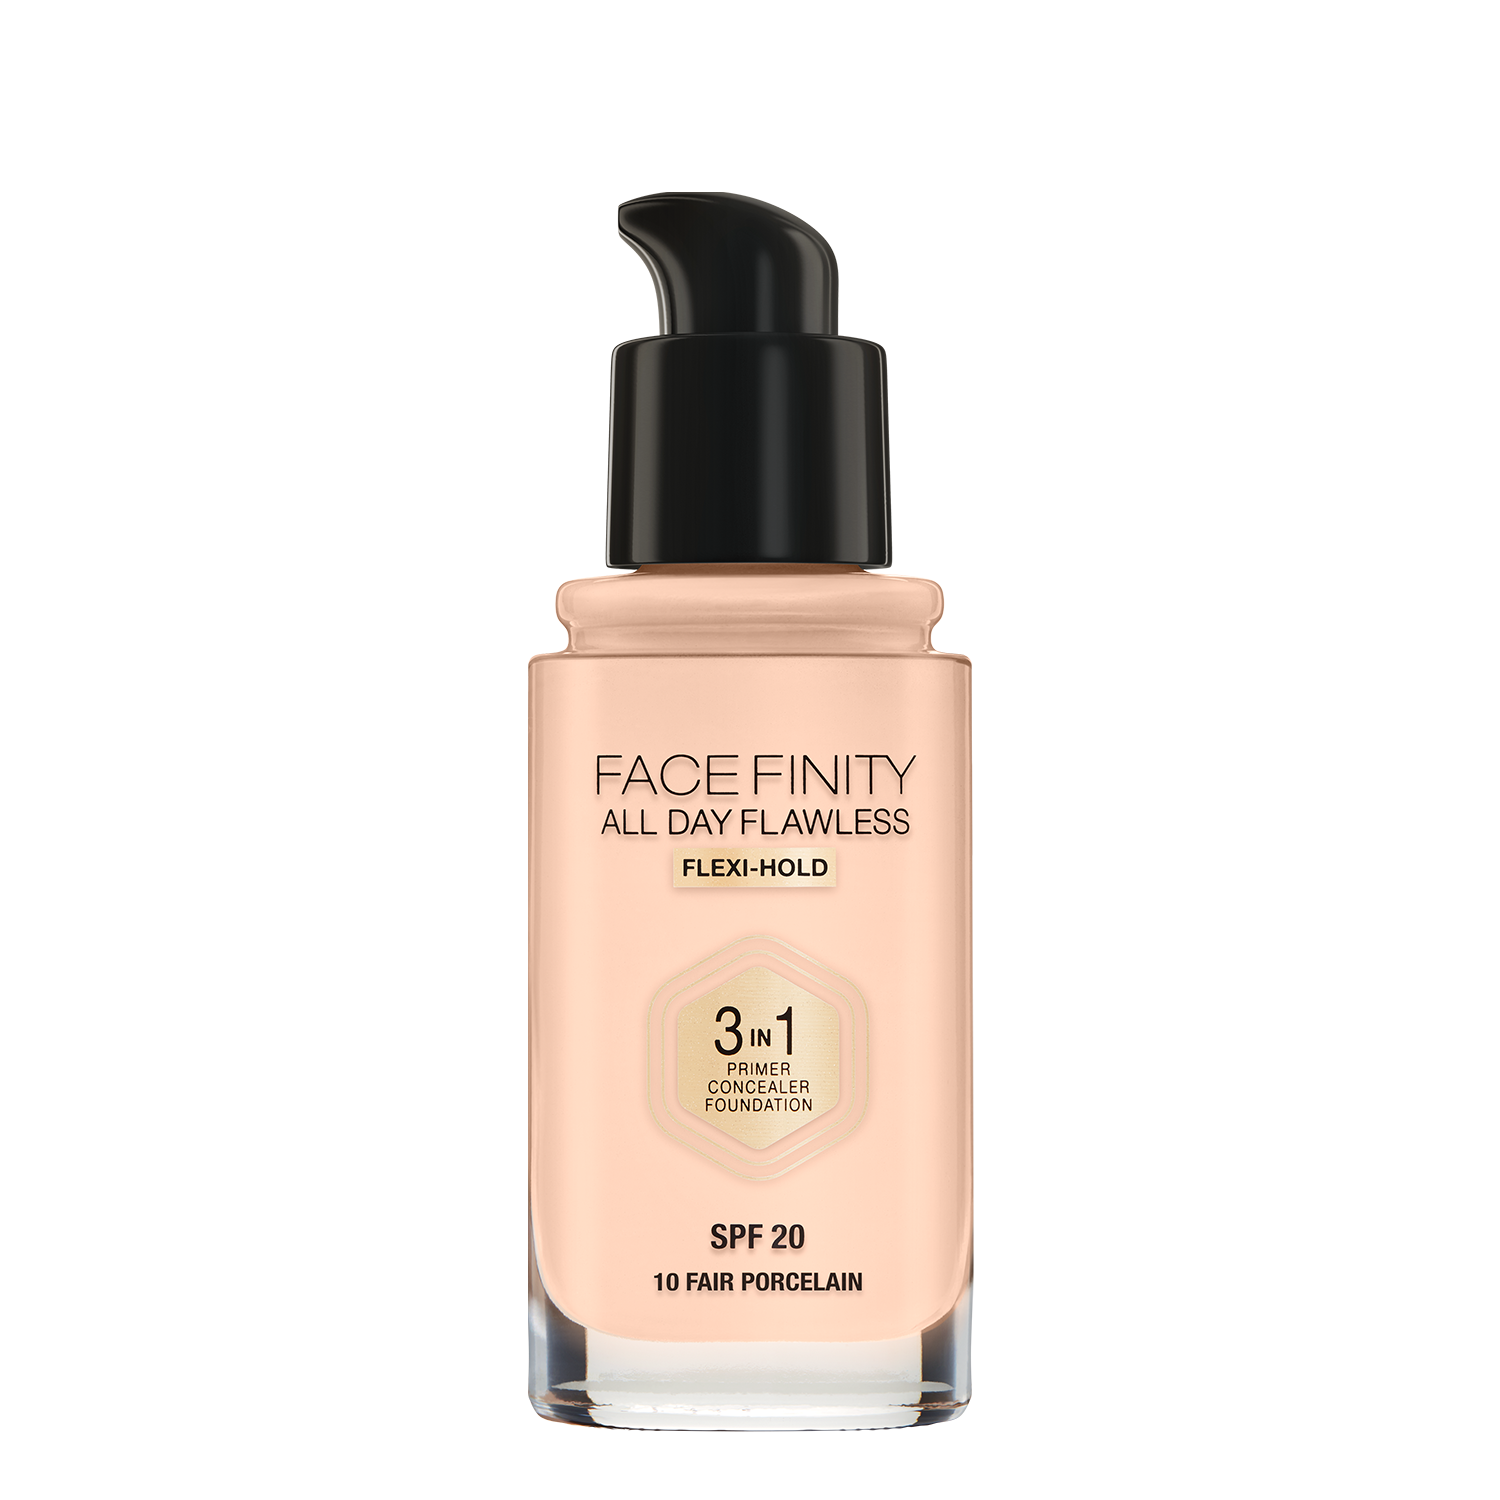 Facefinity All Day Flawless 3 in 1 Foundation